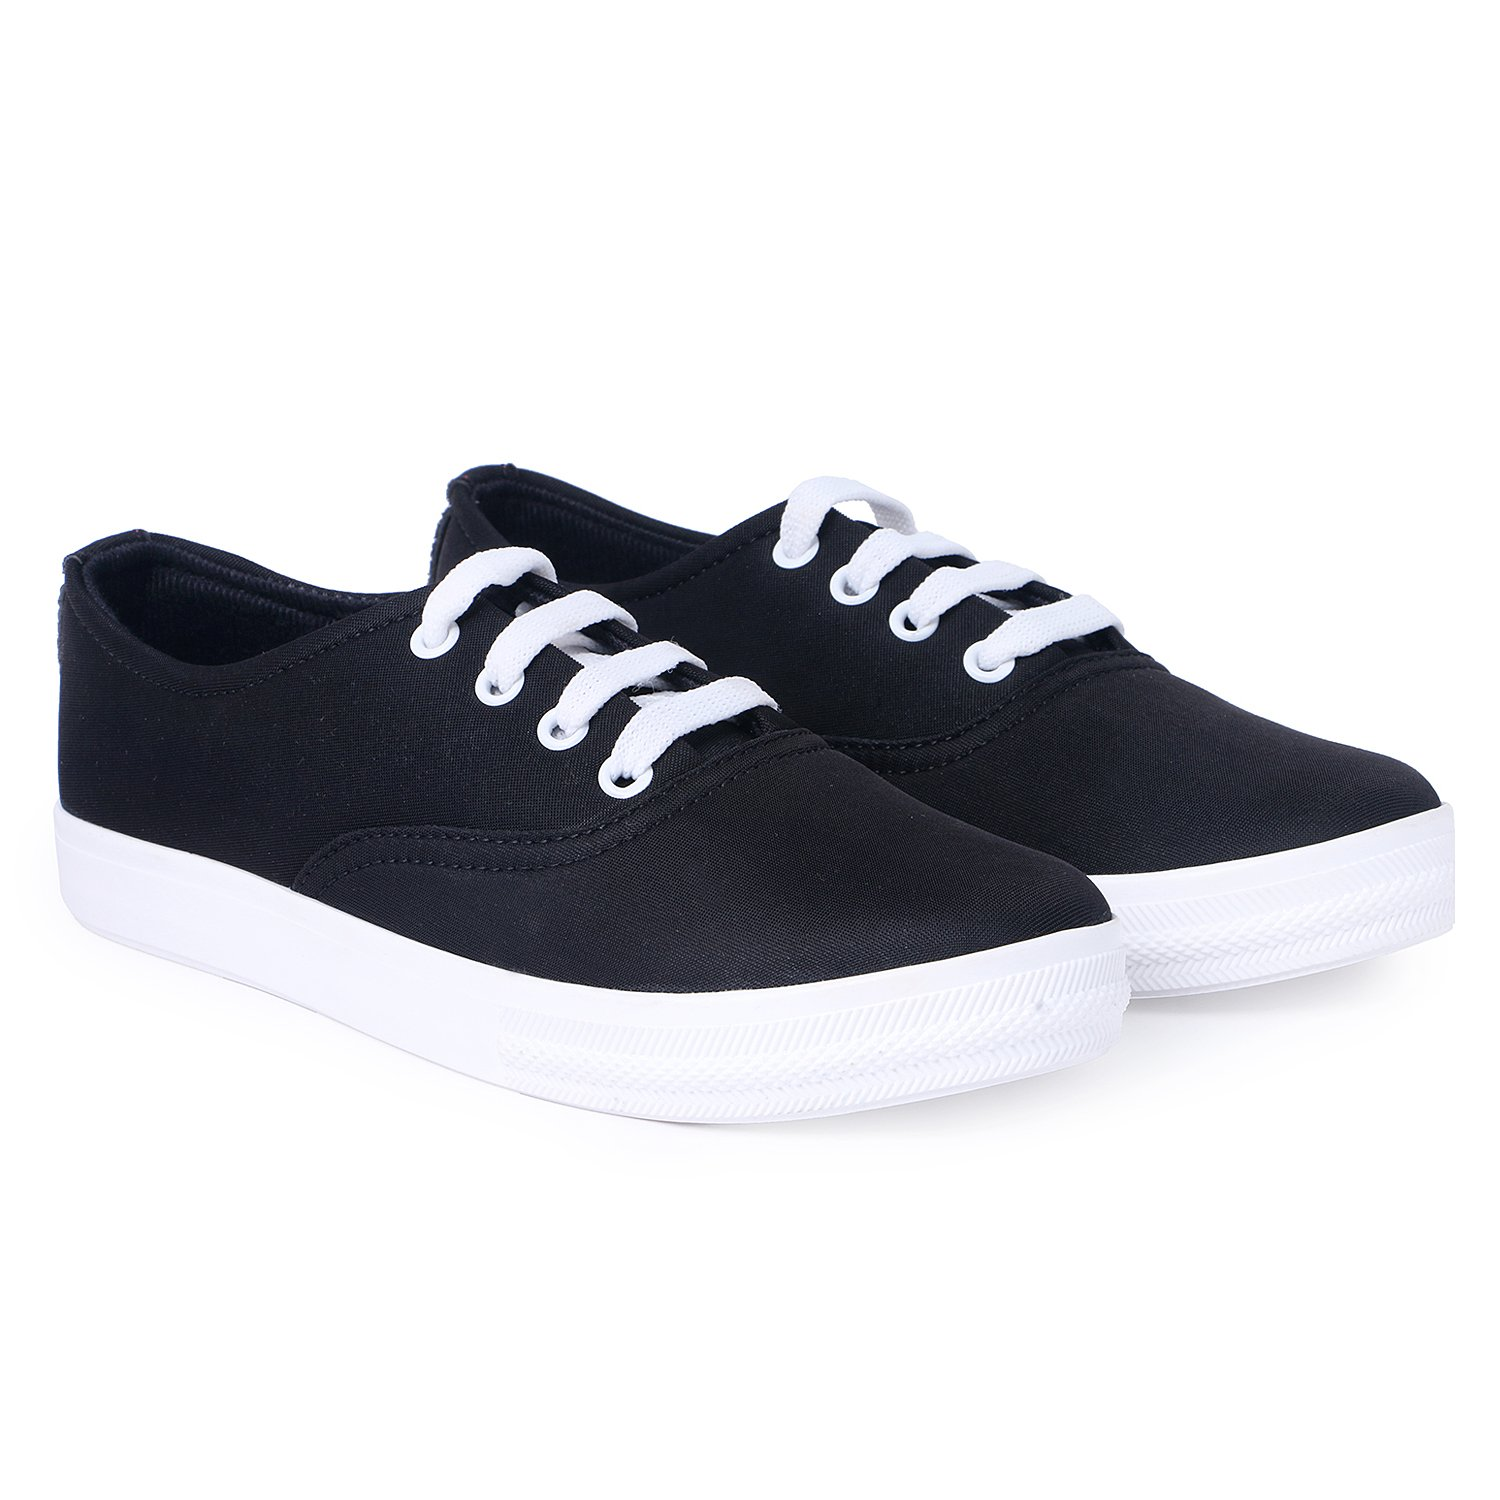 Sainex Casual Shoes for Girls Black Color, rm_2034_7 Buy